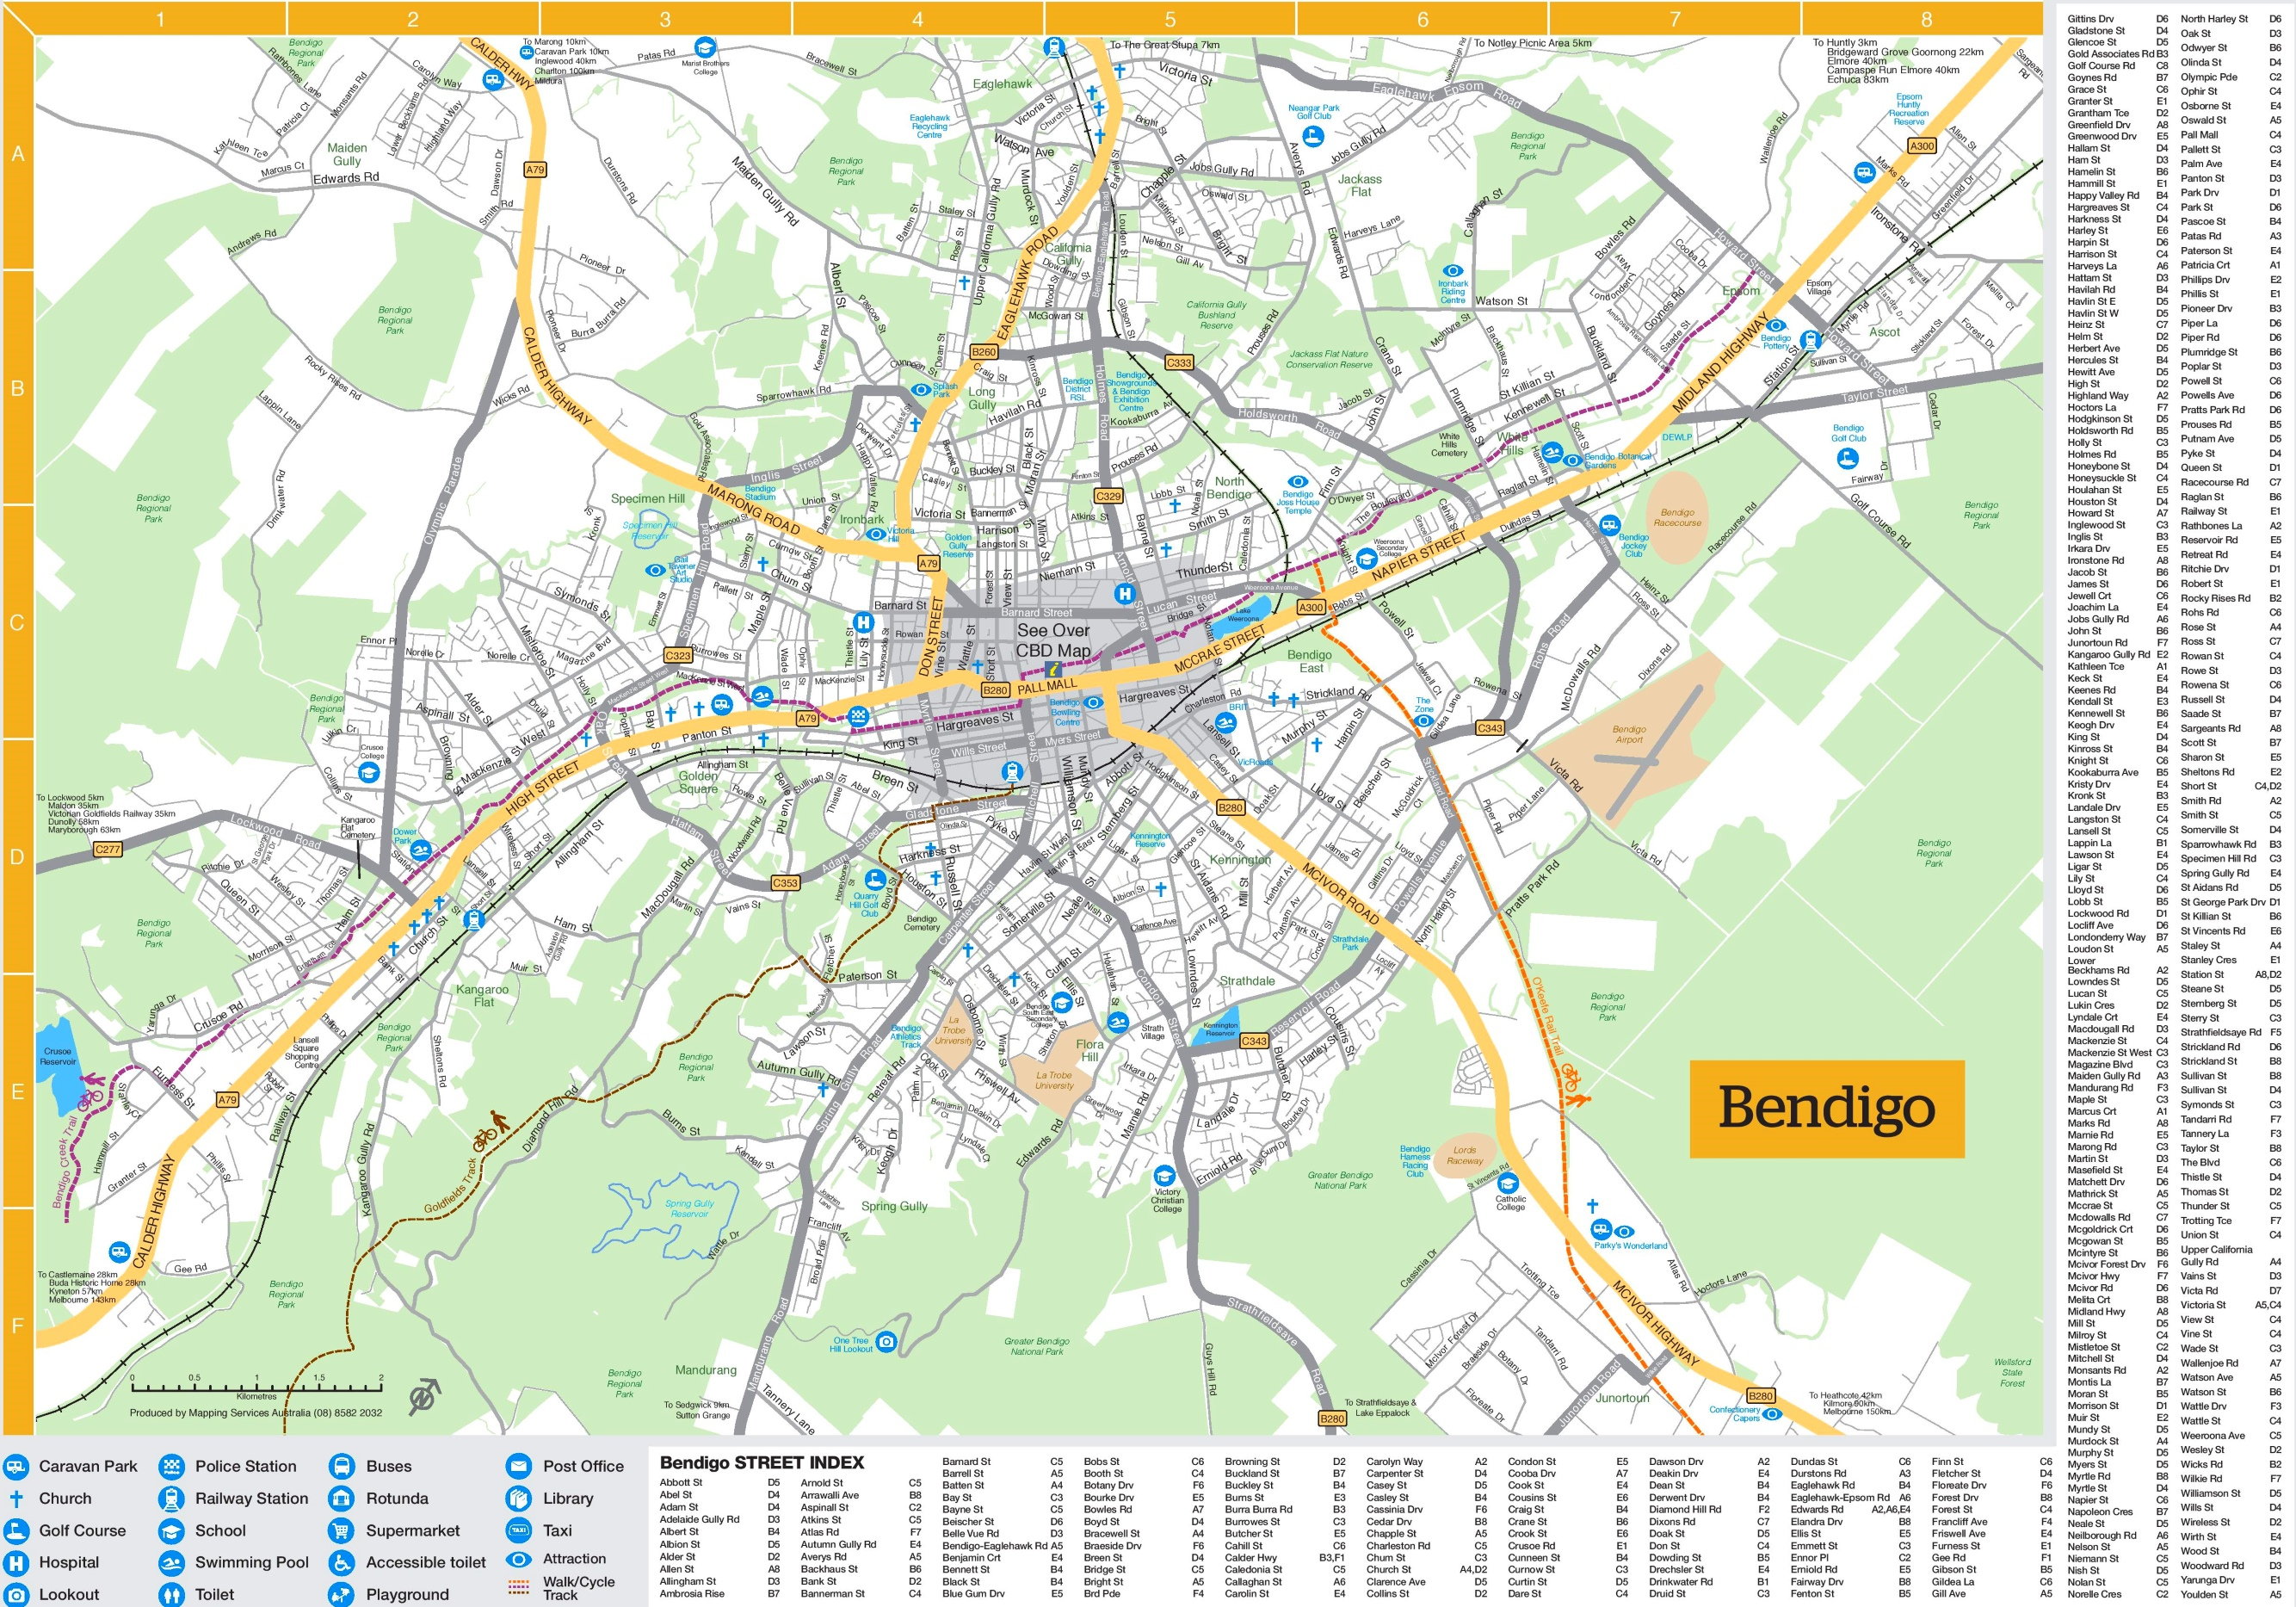 Bendigo tourist map